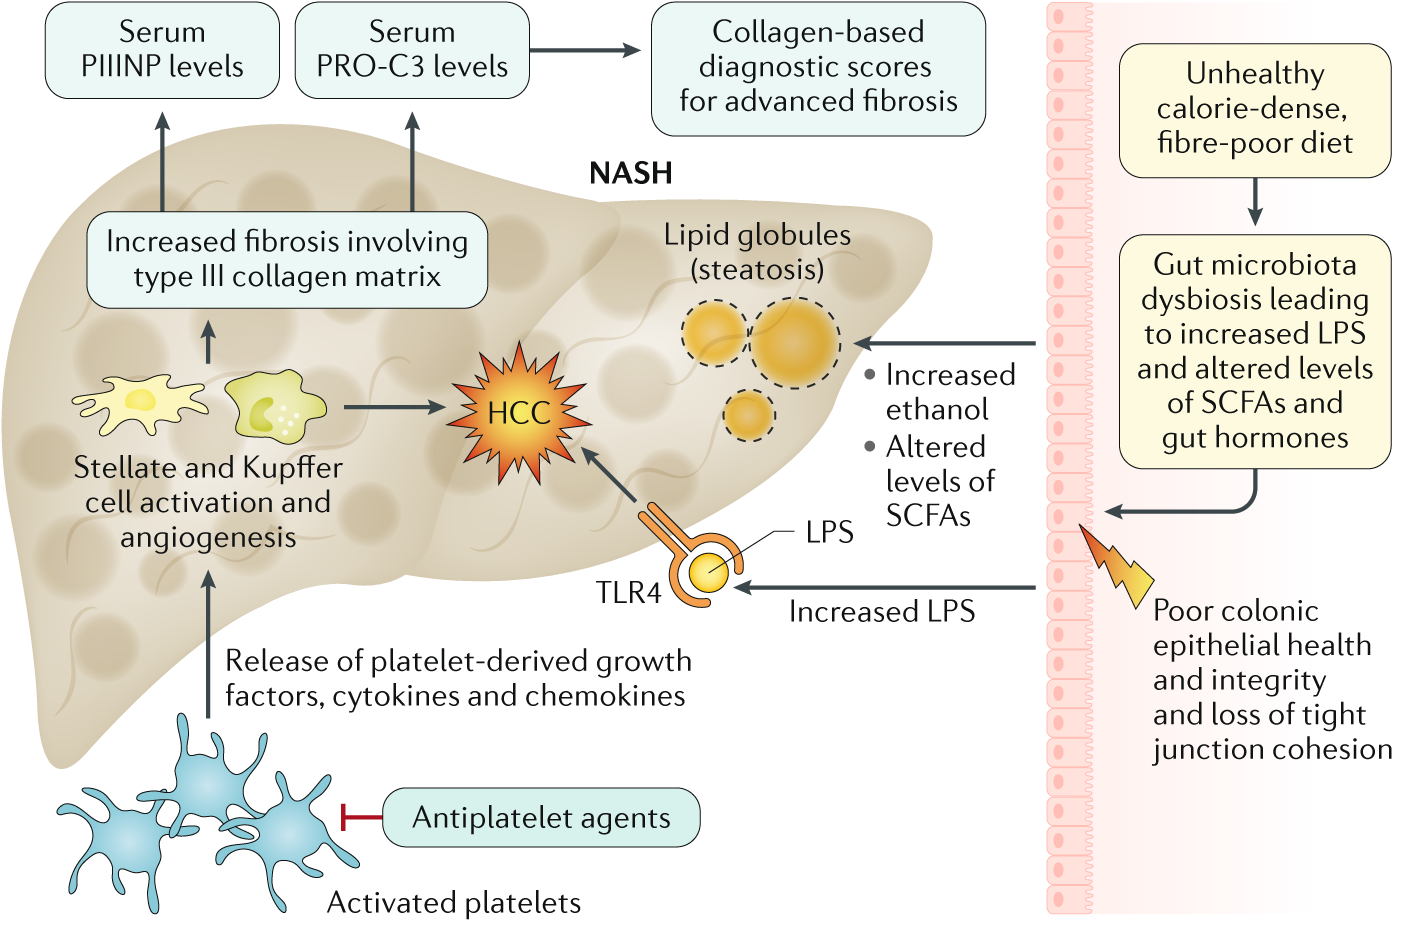 What's new in NAFLD pathogenesis, biomarkers and treatment?